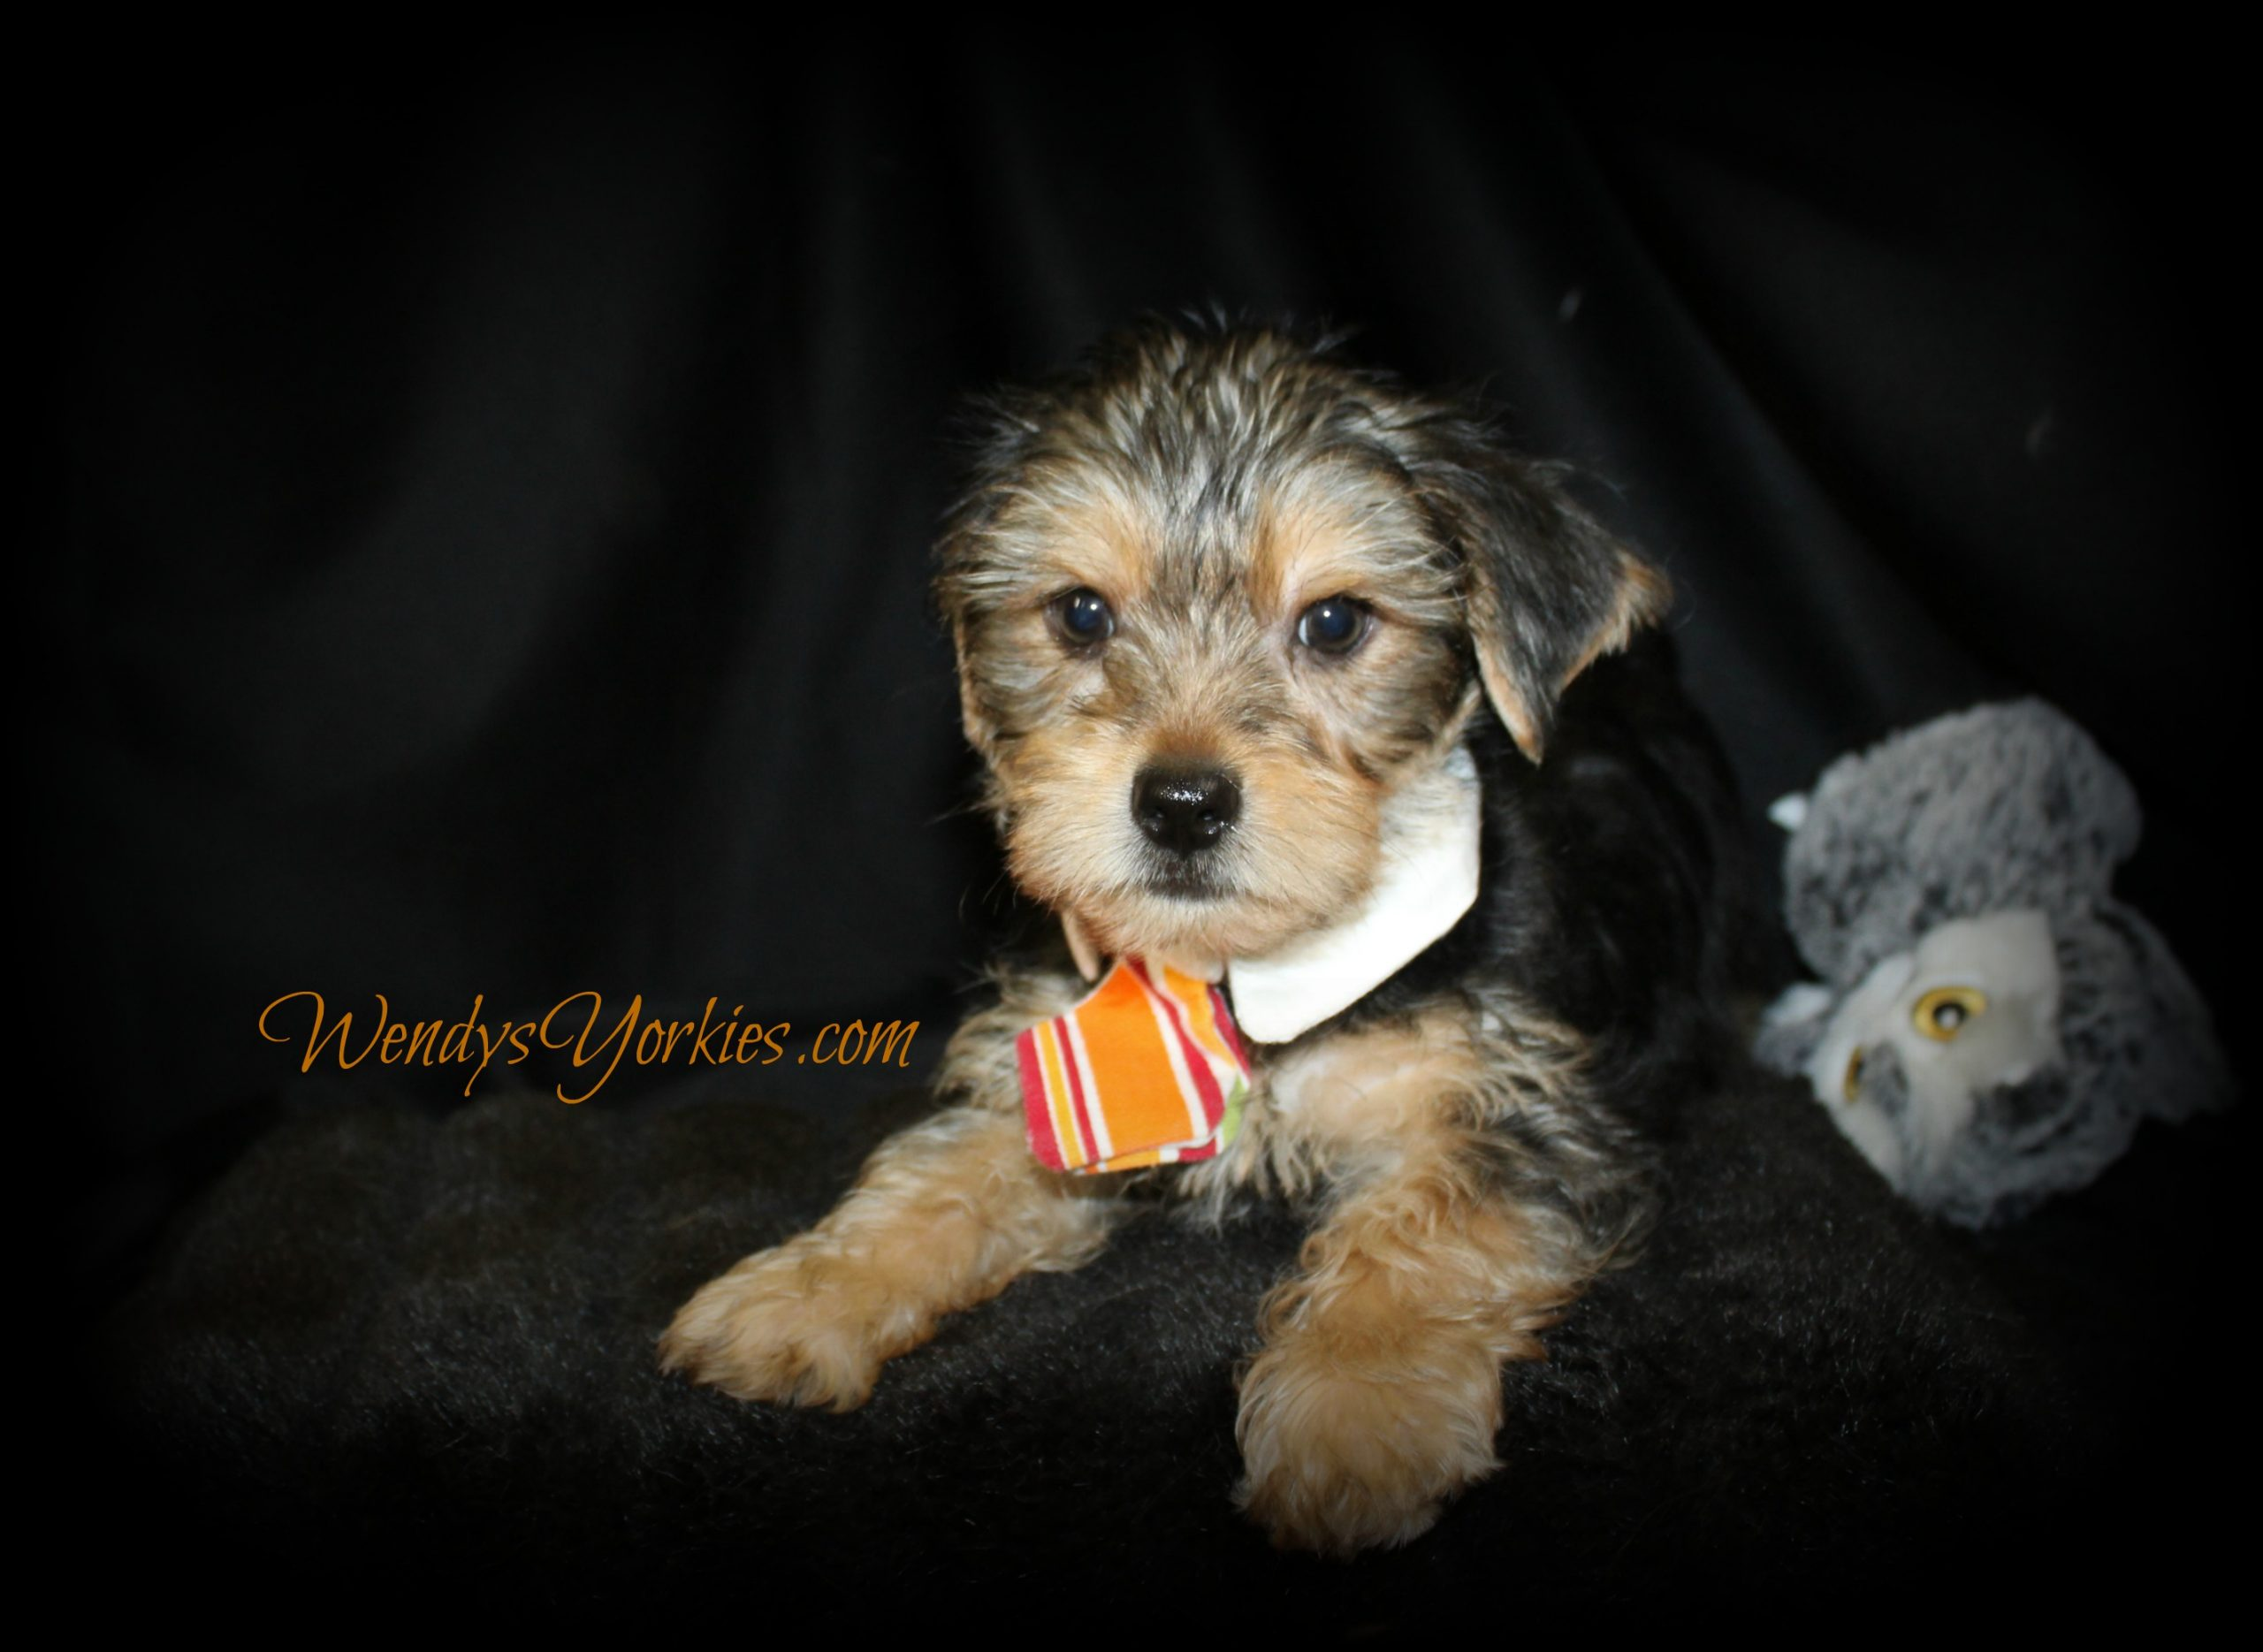 Standard Yorkie puppy for sale in Texas, WendysYorkies.com